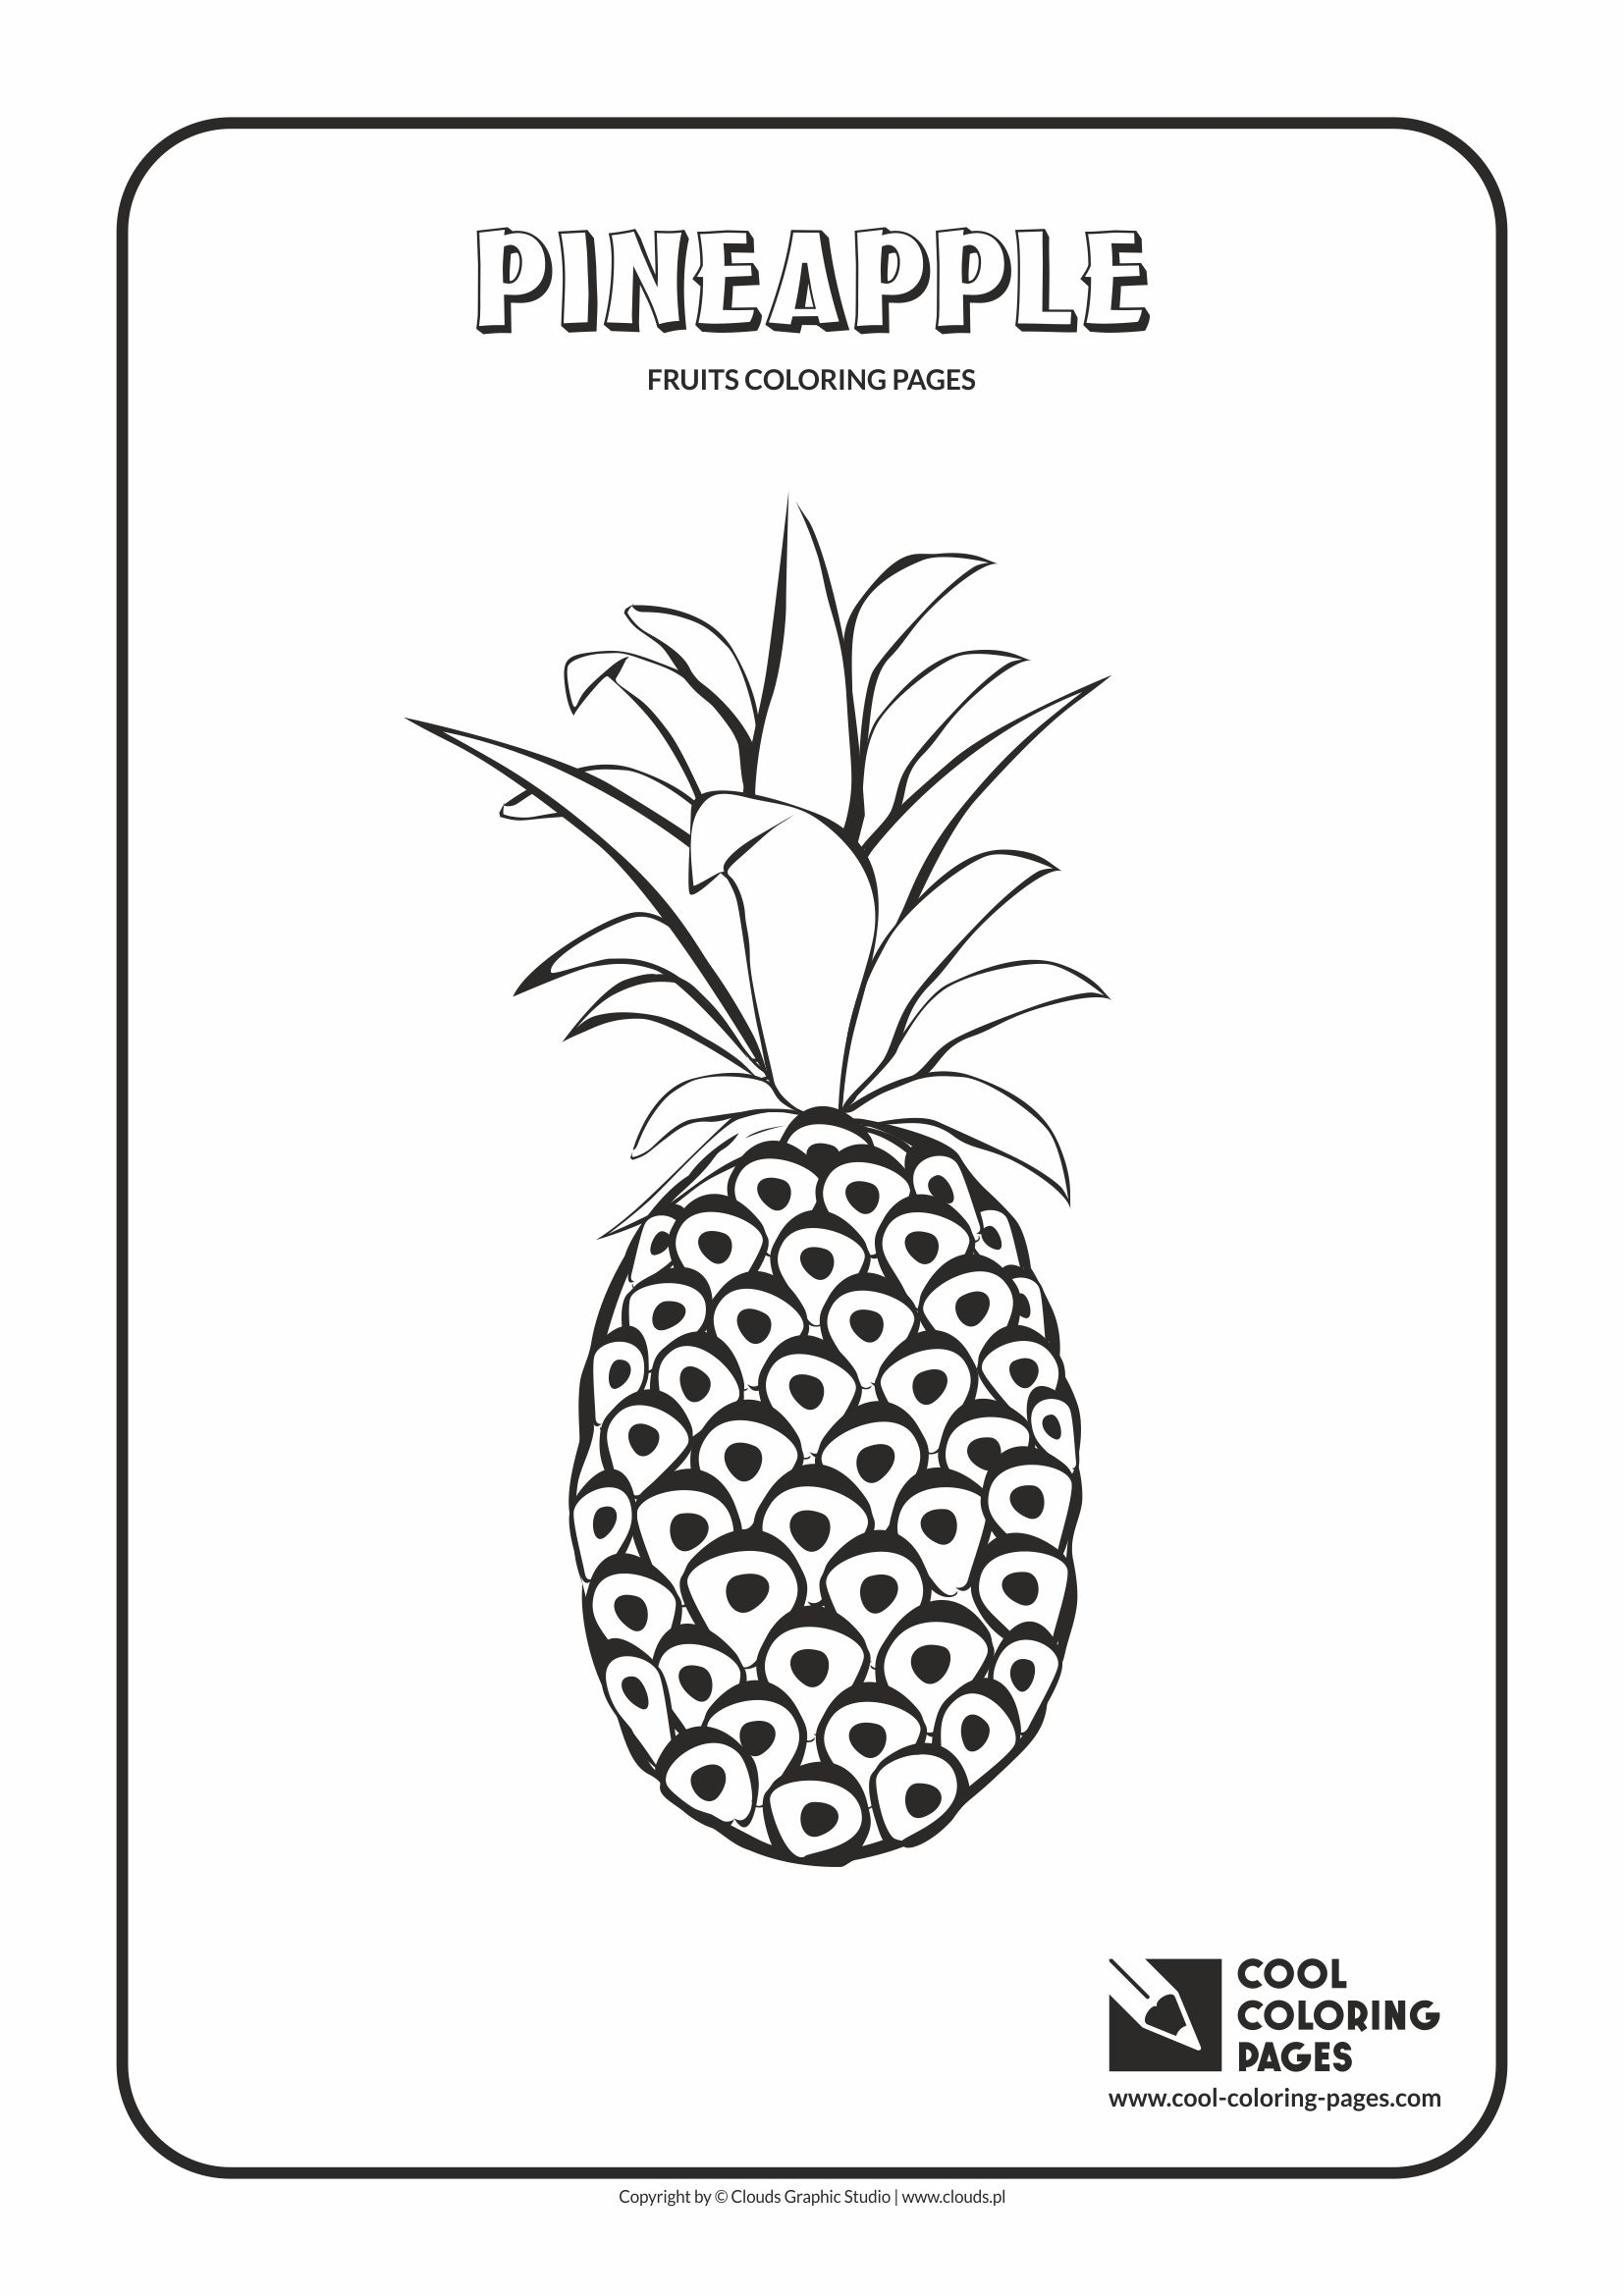 Cool Coloring Pages Pineapple Coloring Page